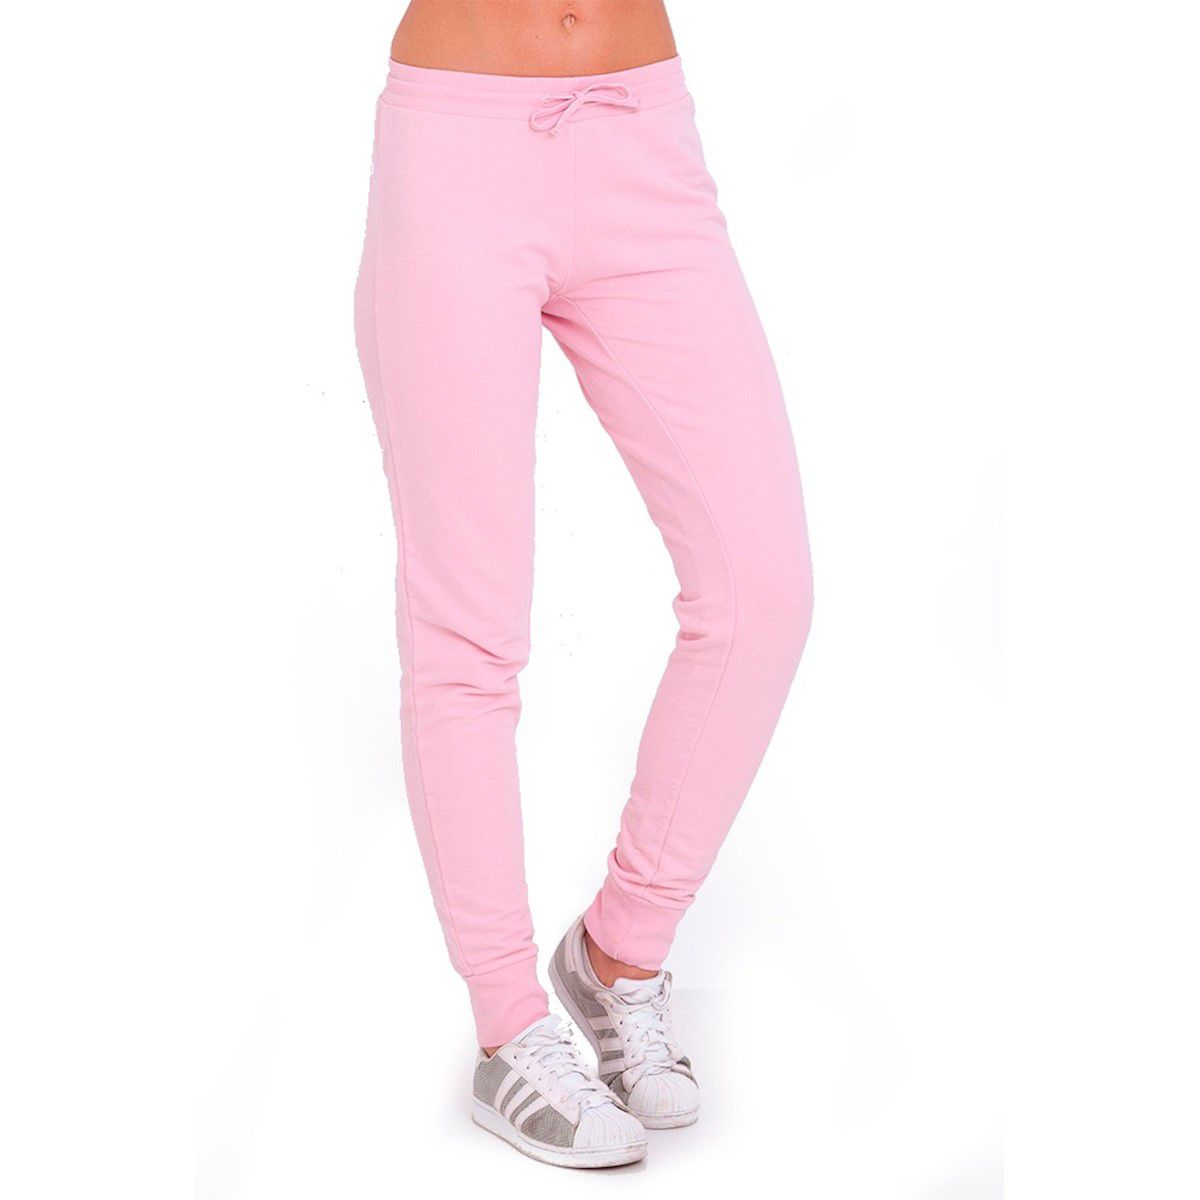 Calça Moletom Billabong Feminina Cute Colors